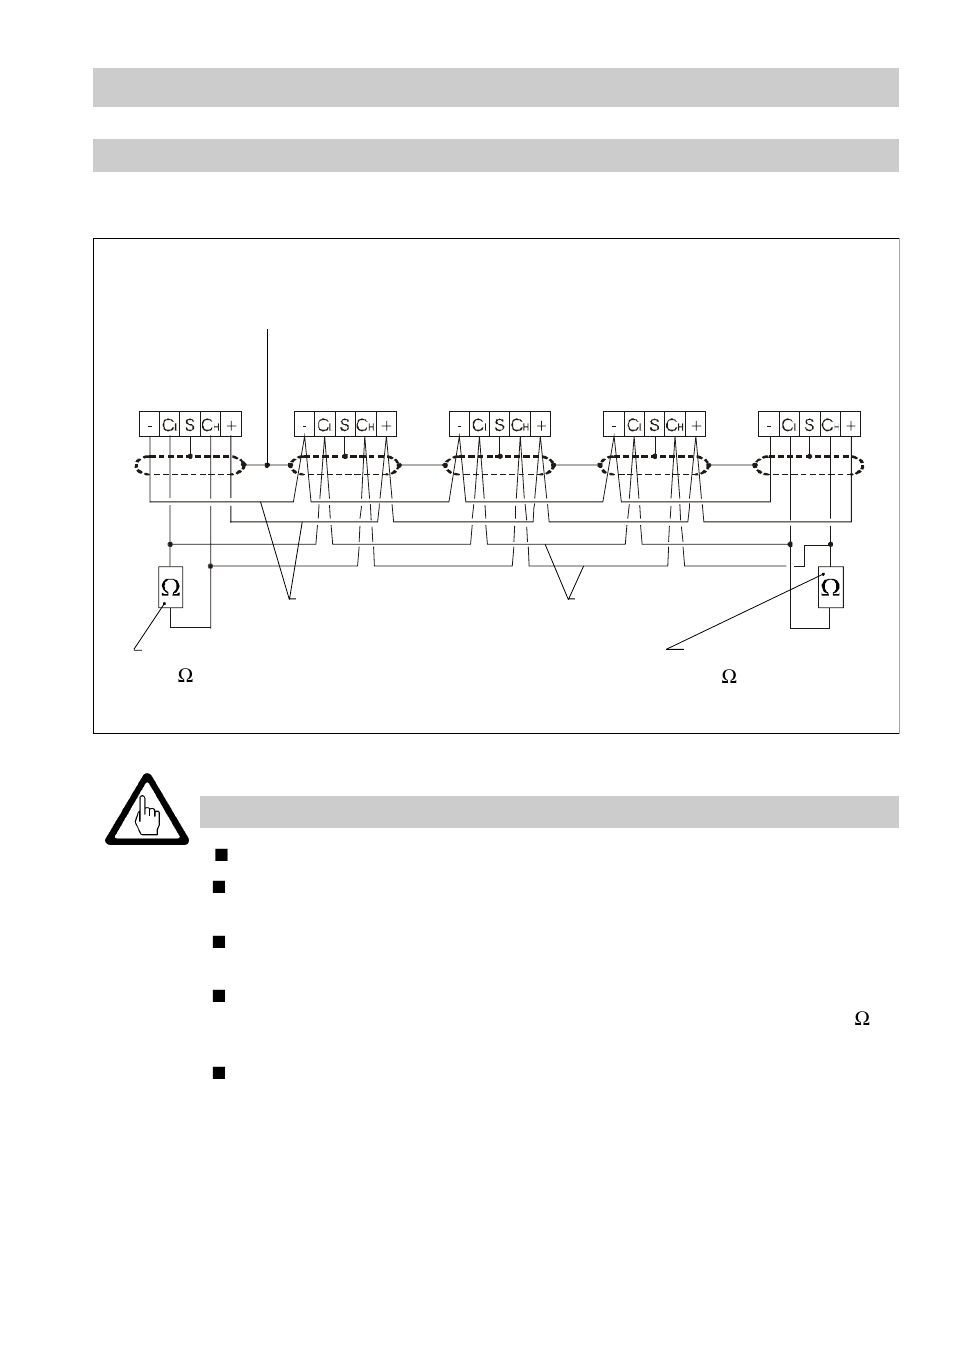 Wiring Diagram For Can Bus  Wiring  Fig  6